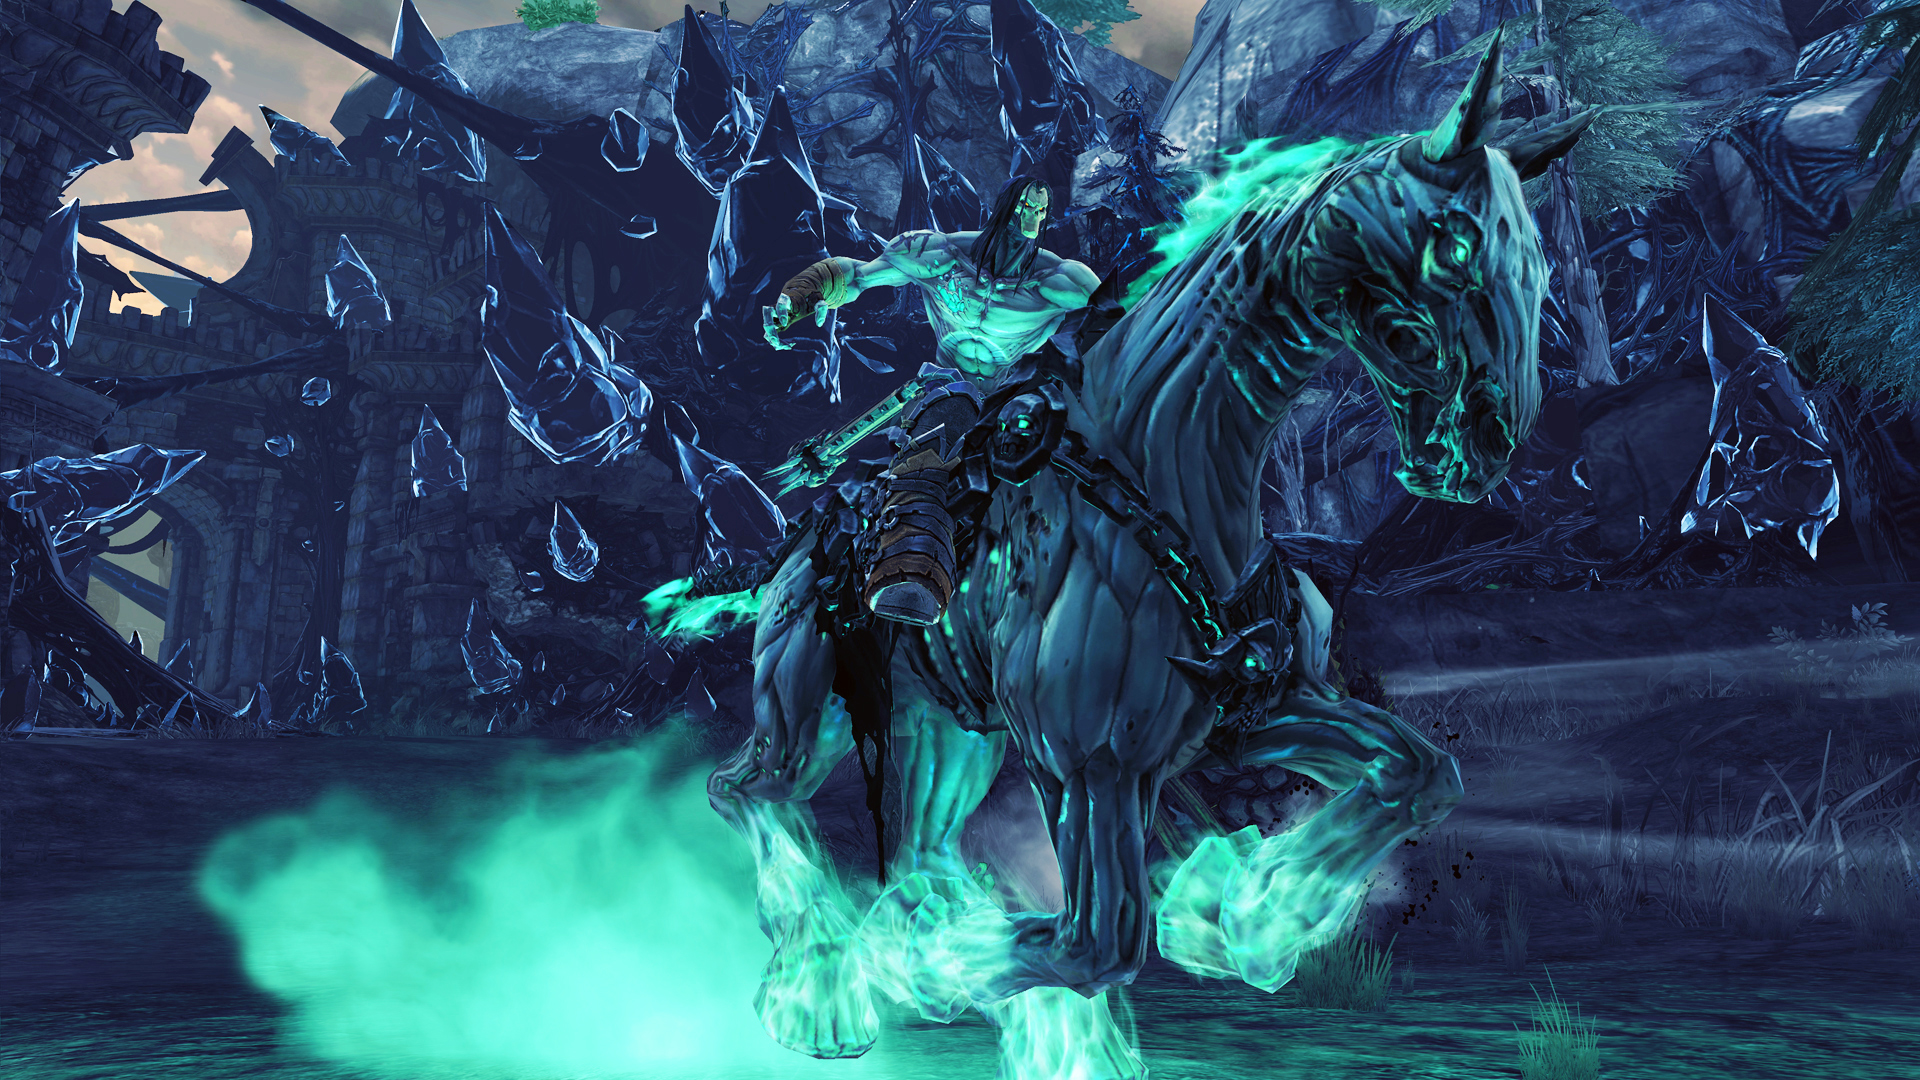 E interview Darksiders lightens up with Death adopts RPG